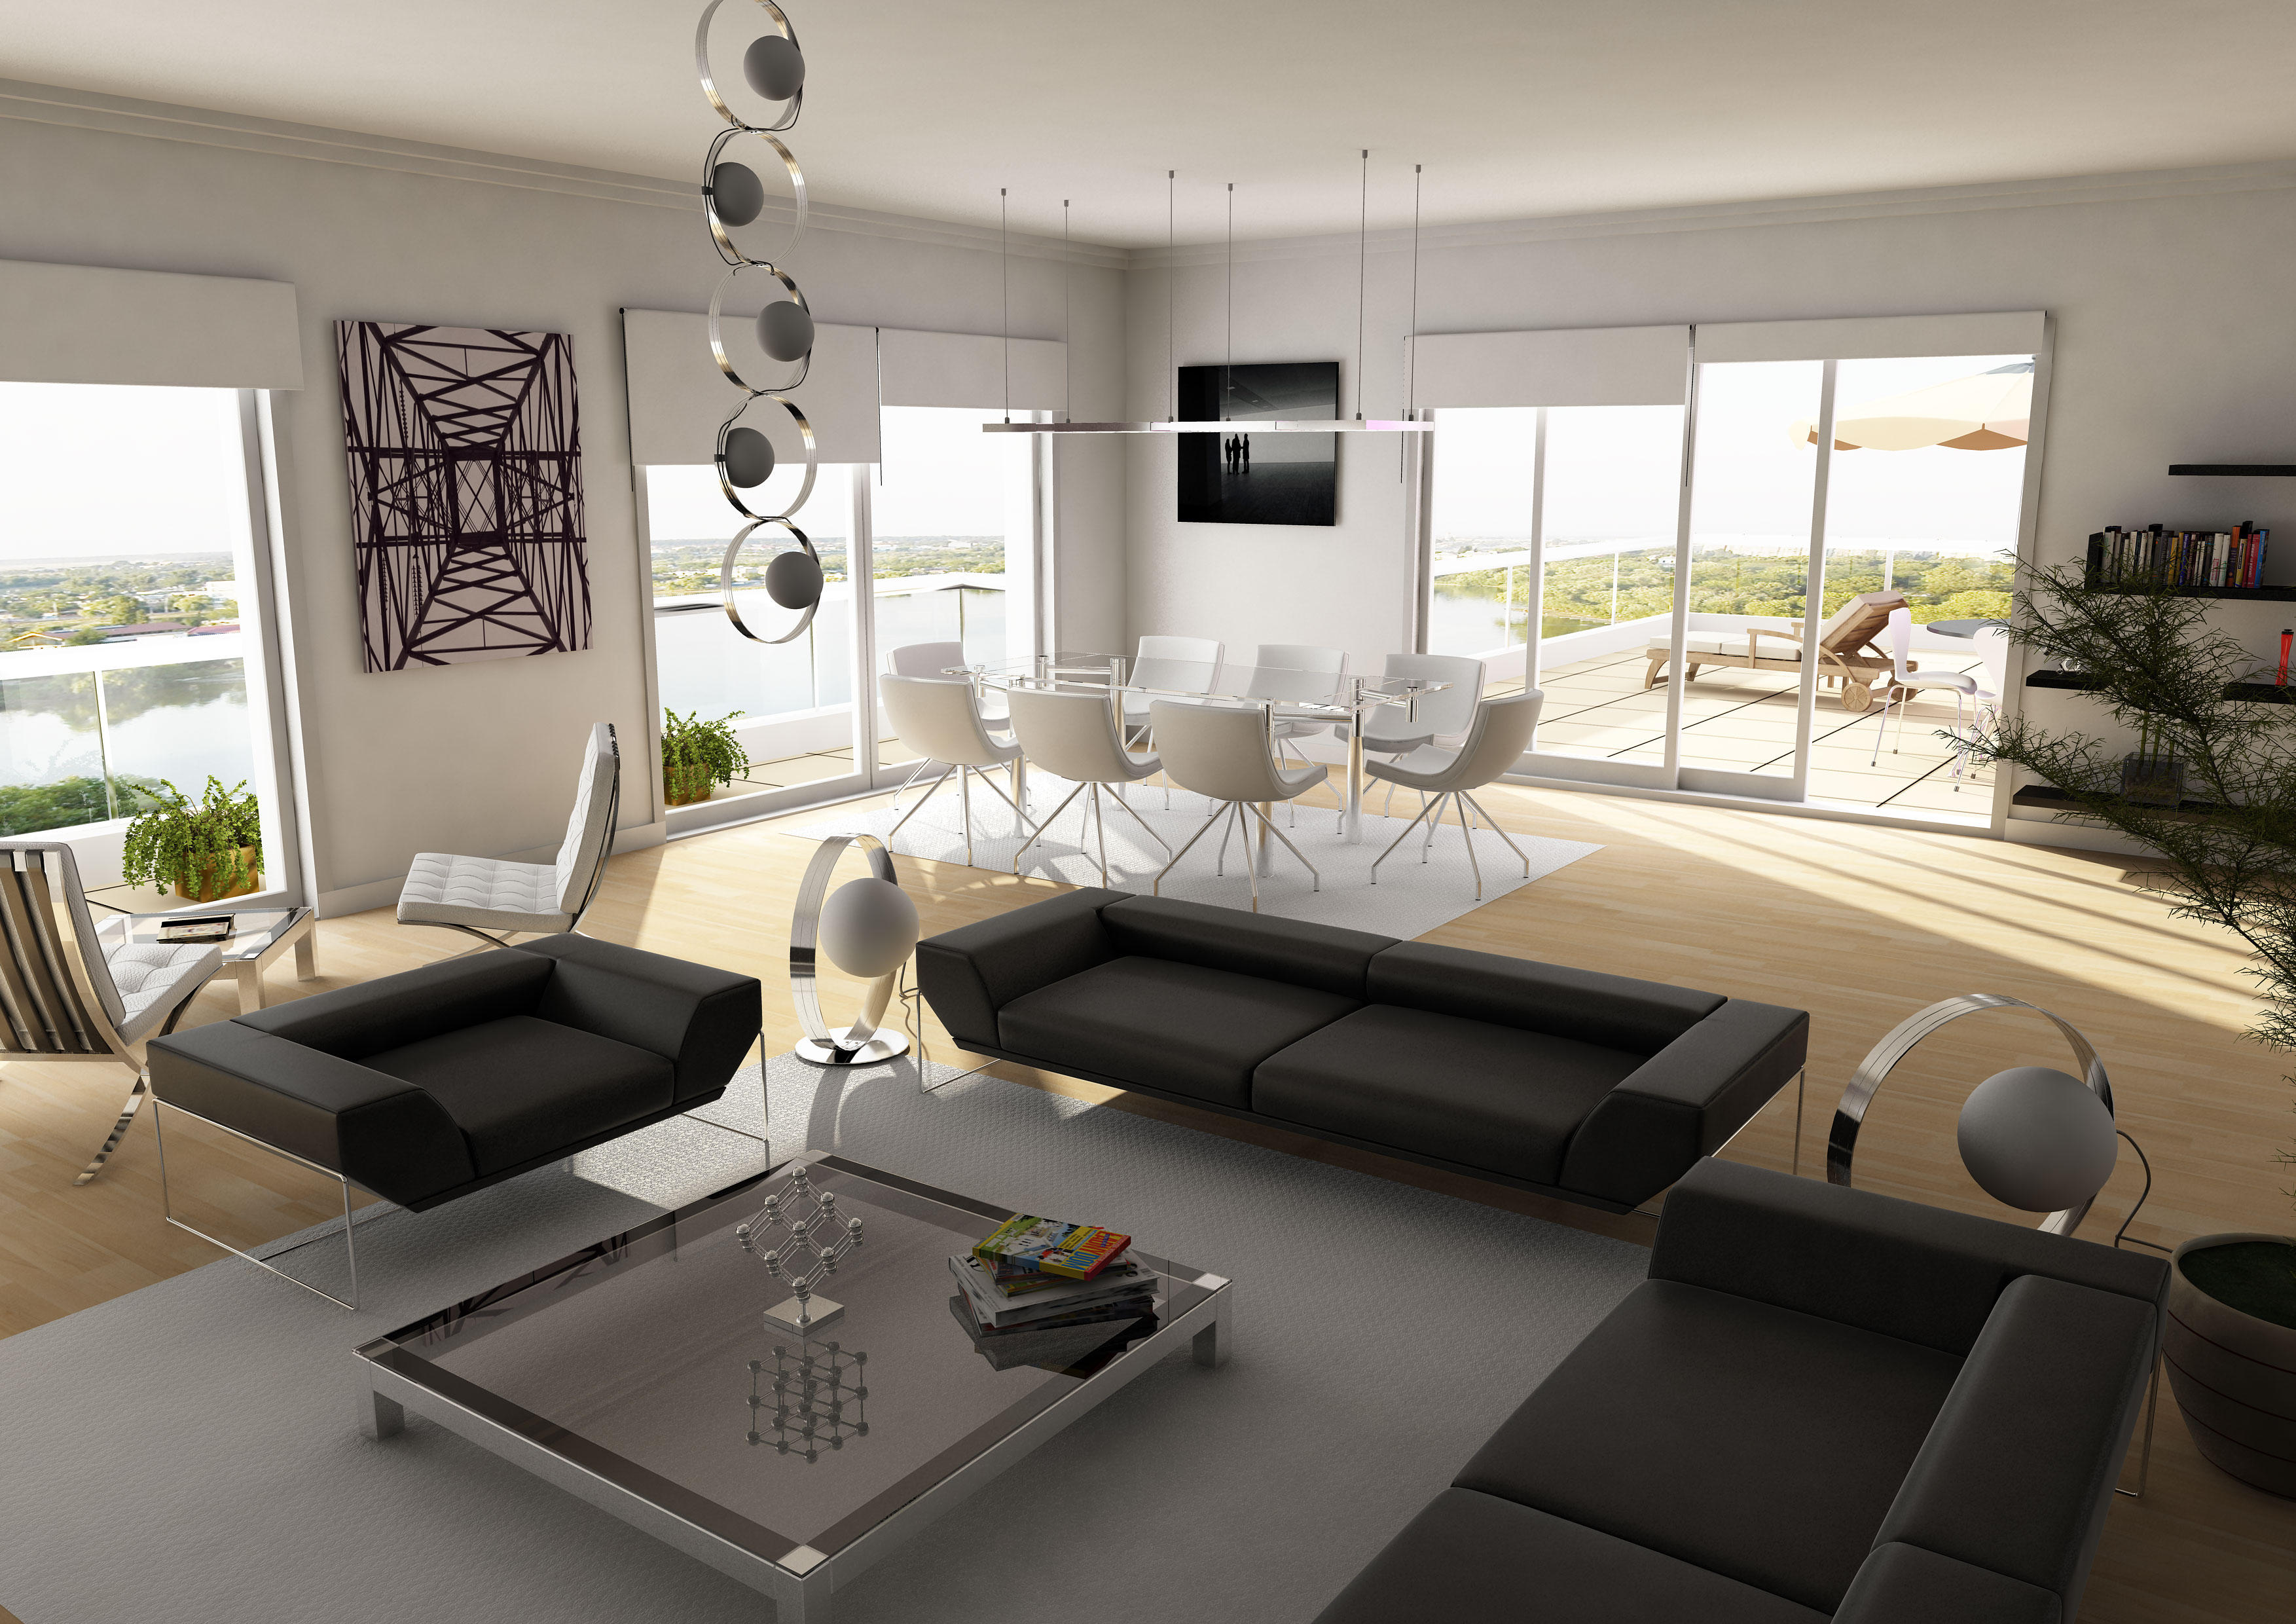 Living room high resolution by sedatdurucan on deviantart - Living room photos ...